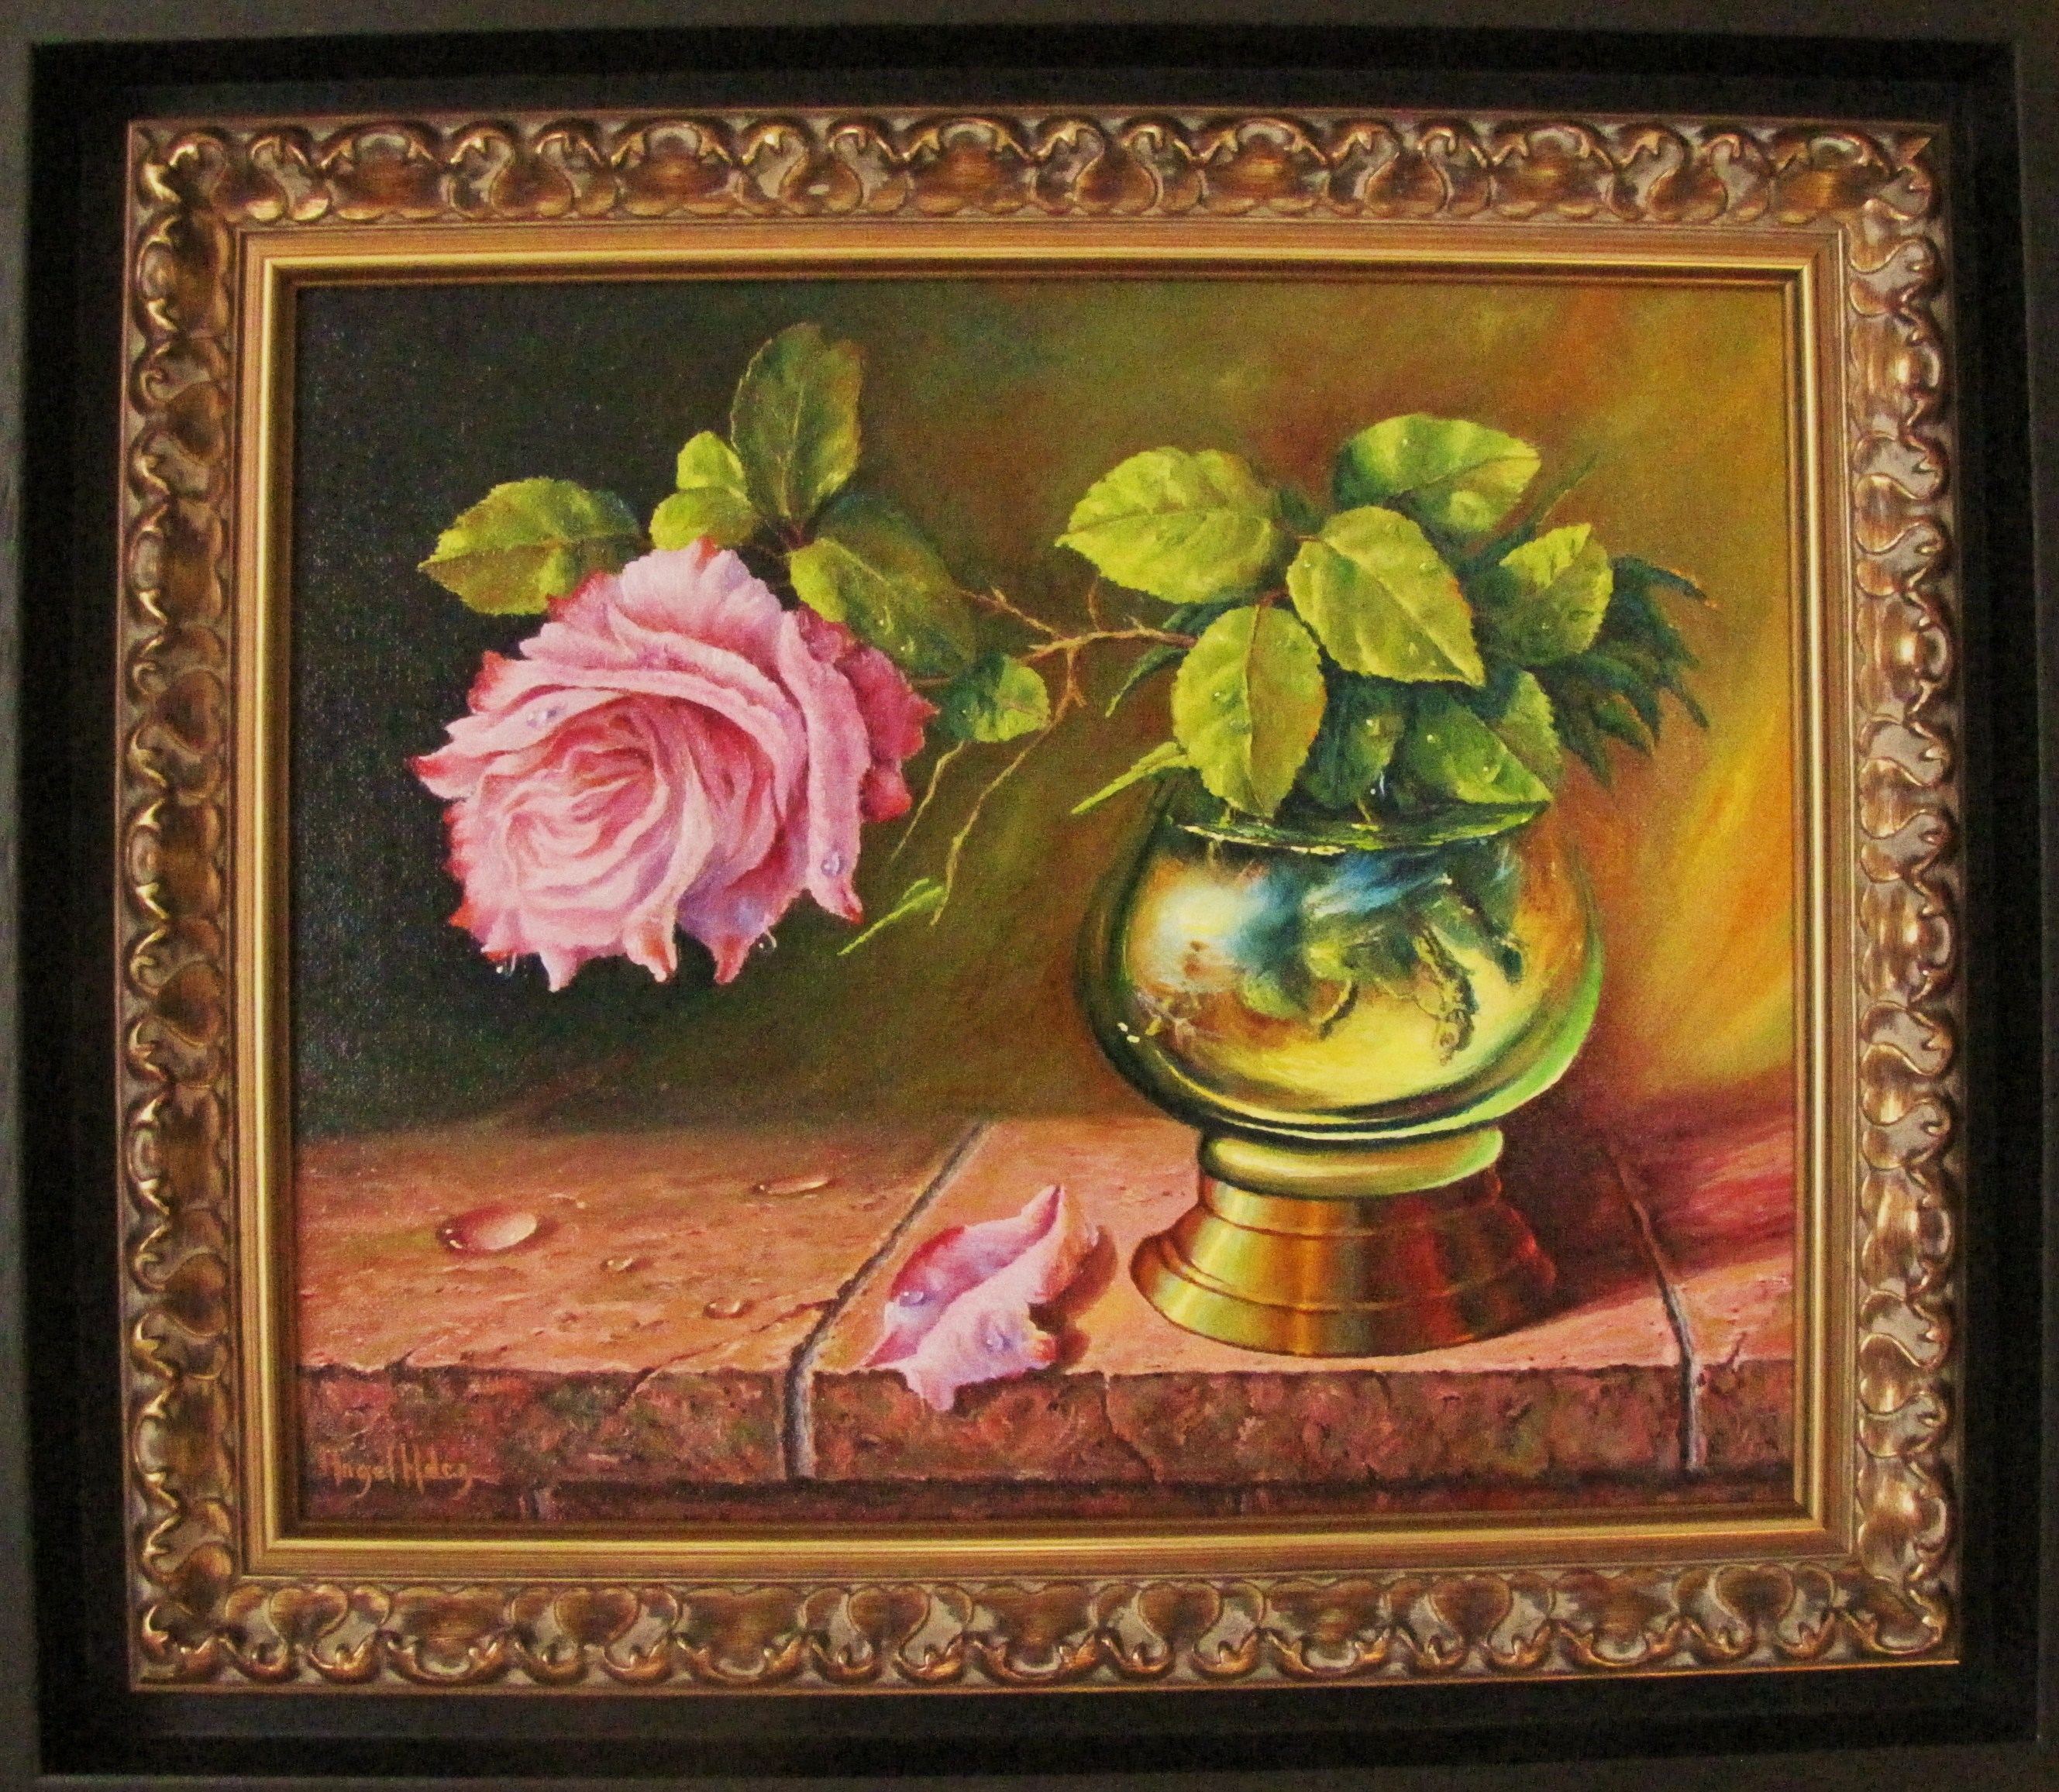 STILL LIFE WITH ROSE IN CUP